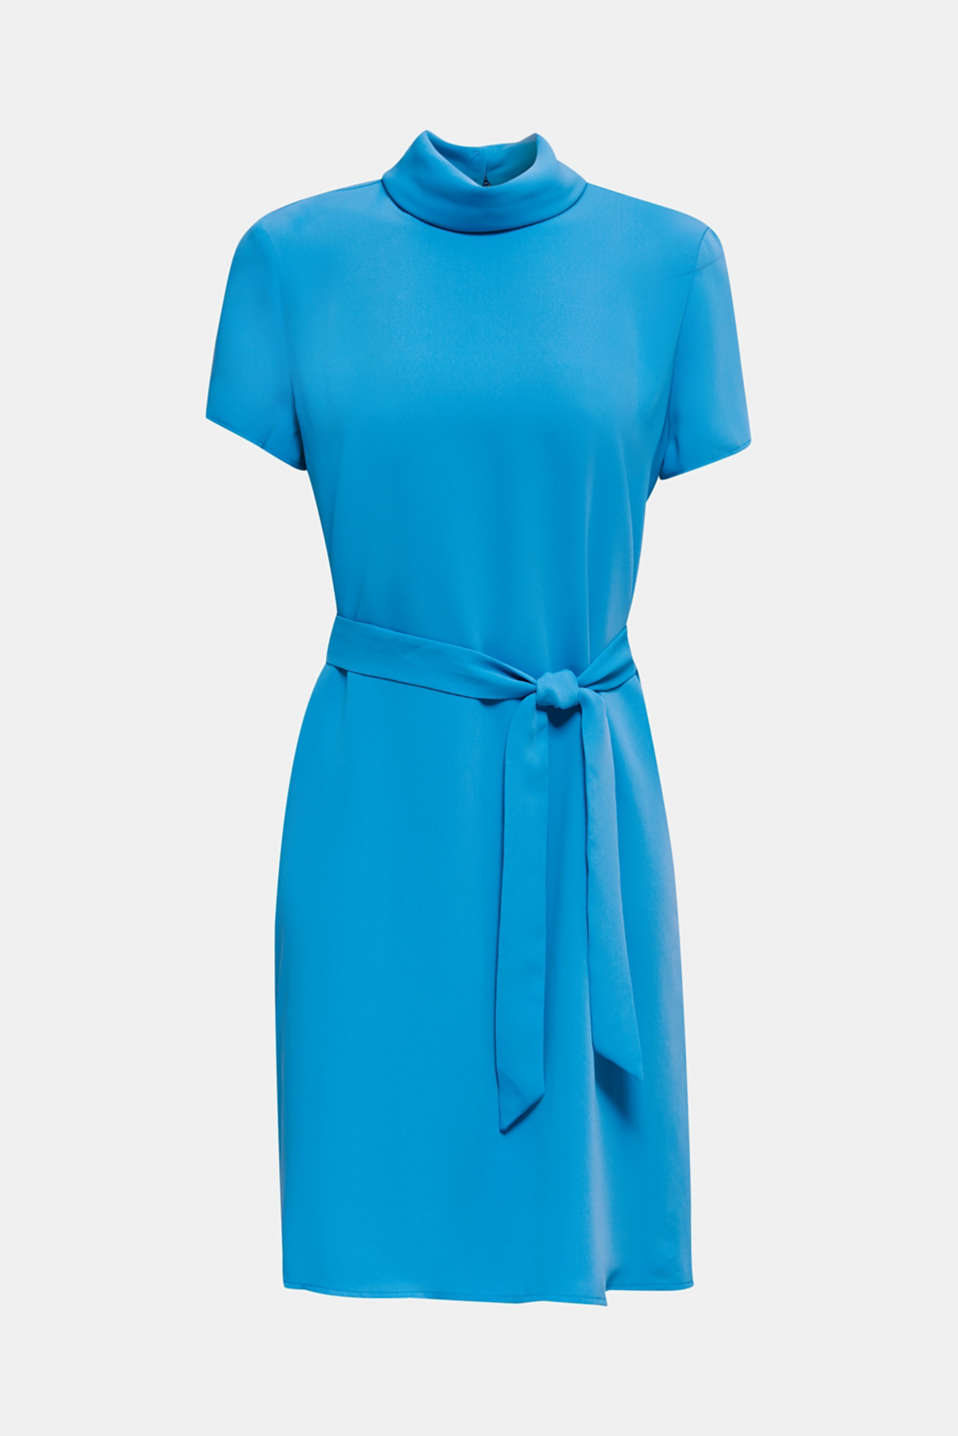 Cloth polo neck dress, DARK TURQUOISE, detail image number 7